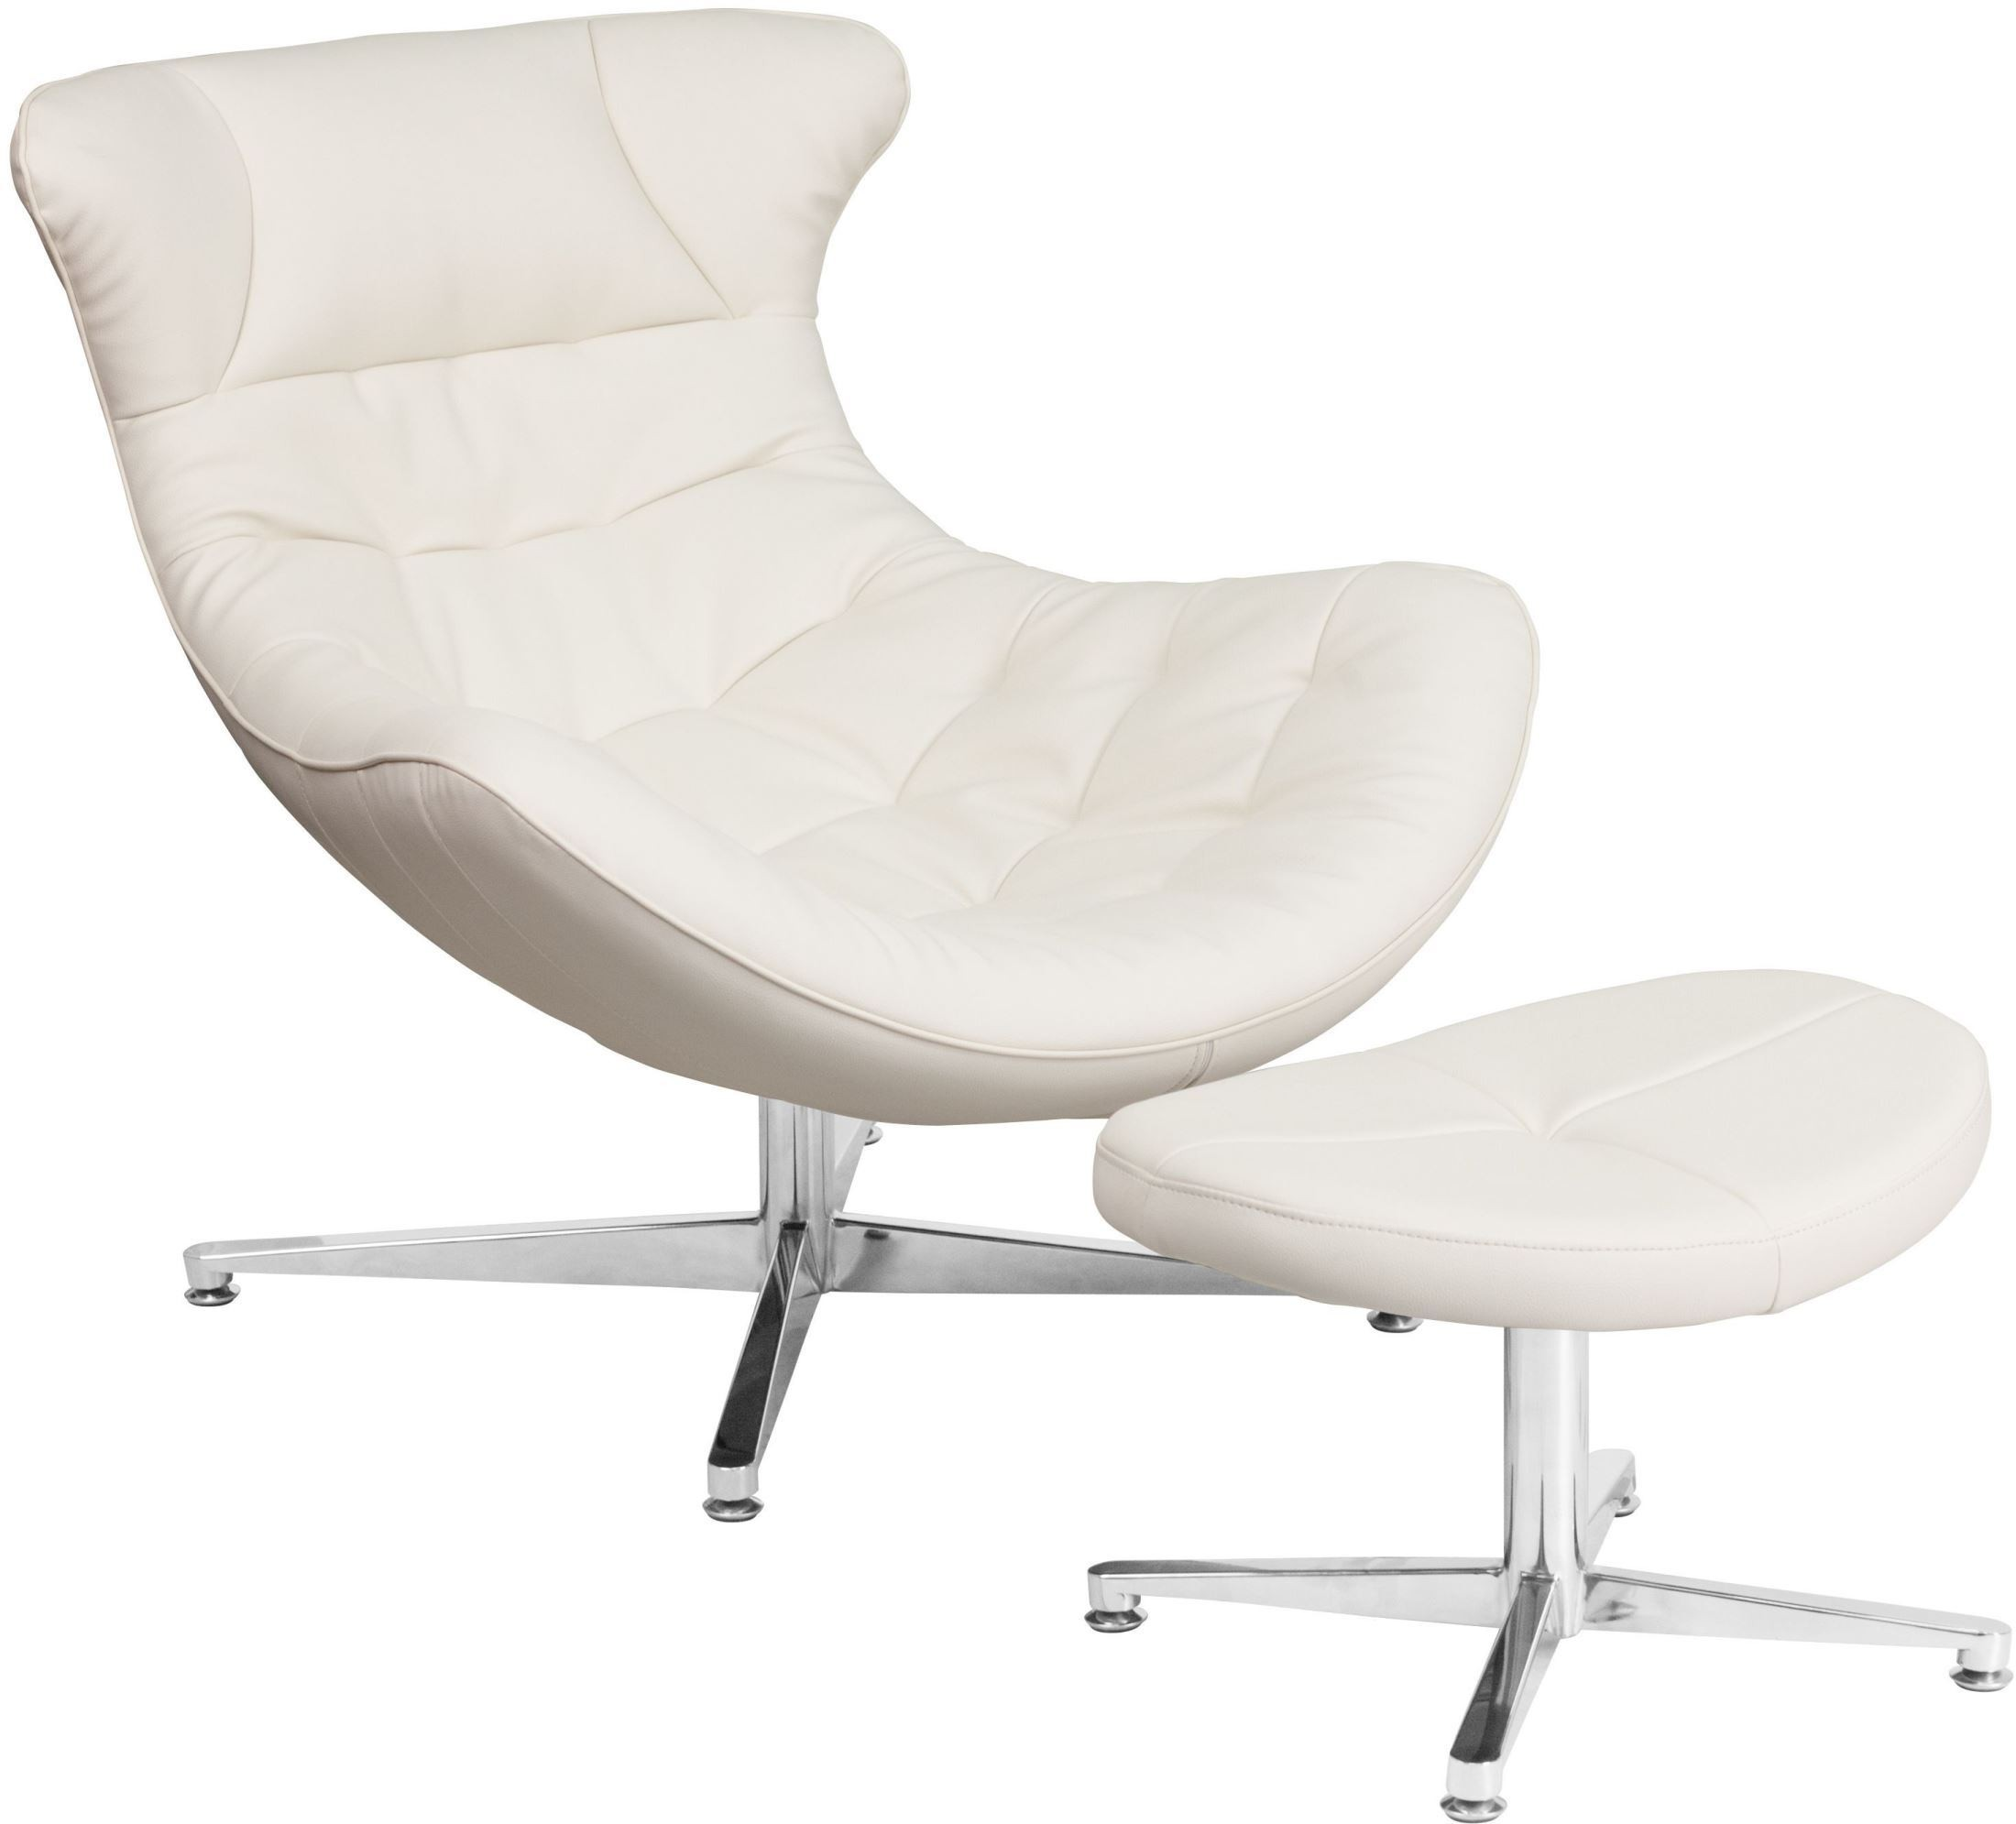 Cocoon Chair White Leather Cocoon Chair With Ottoman From Renegade